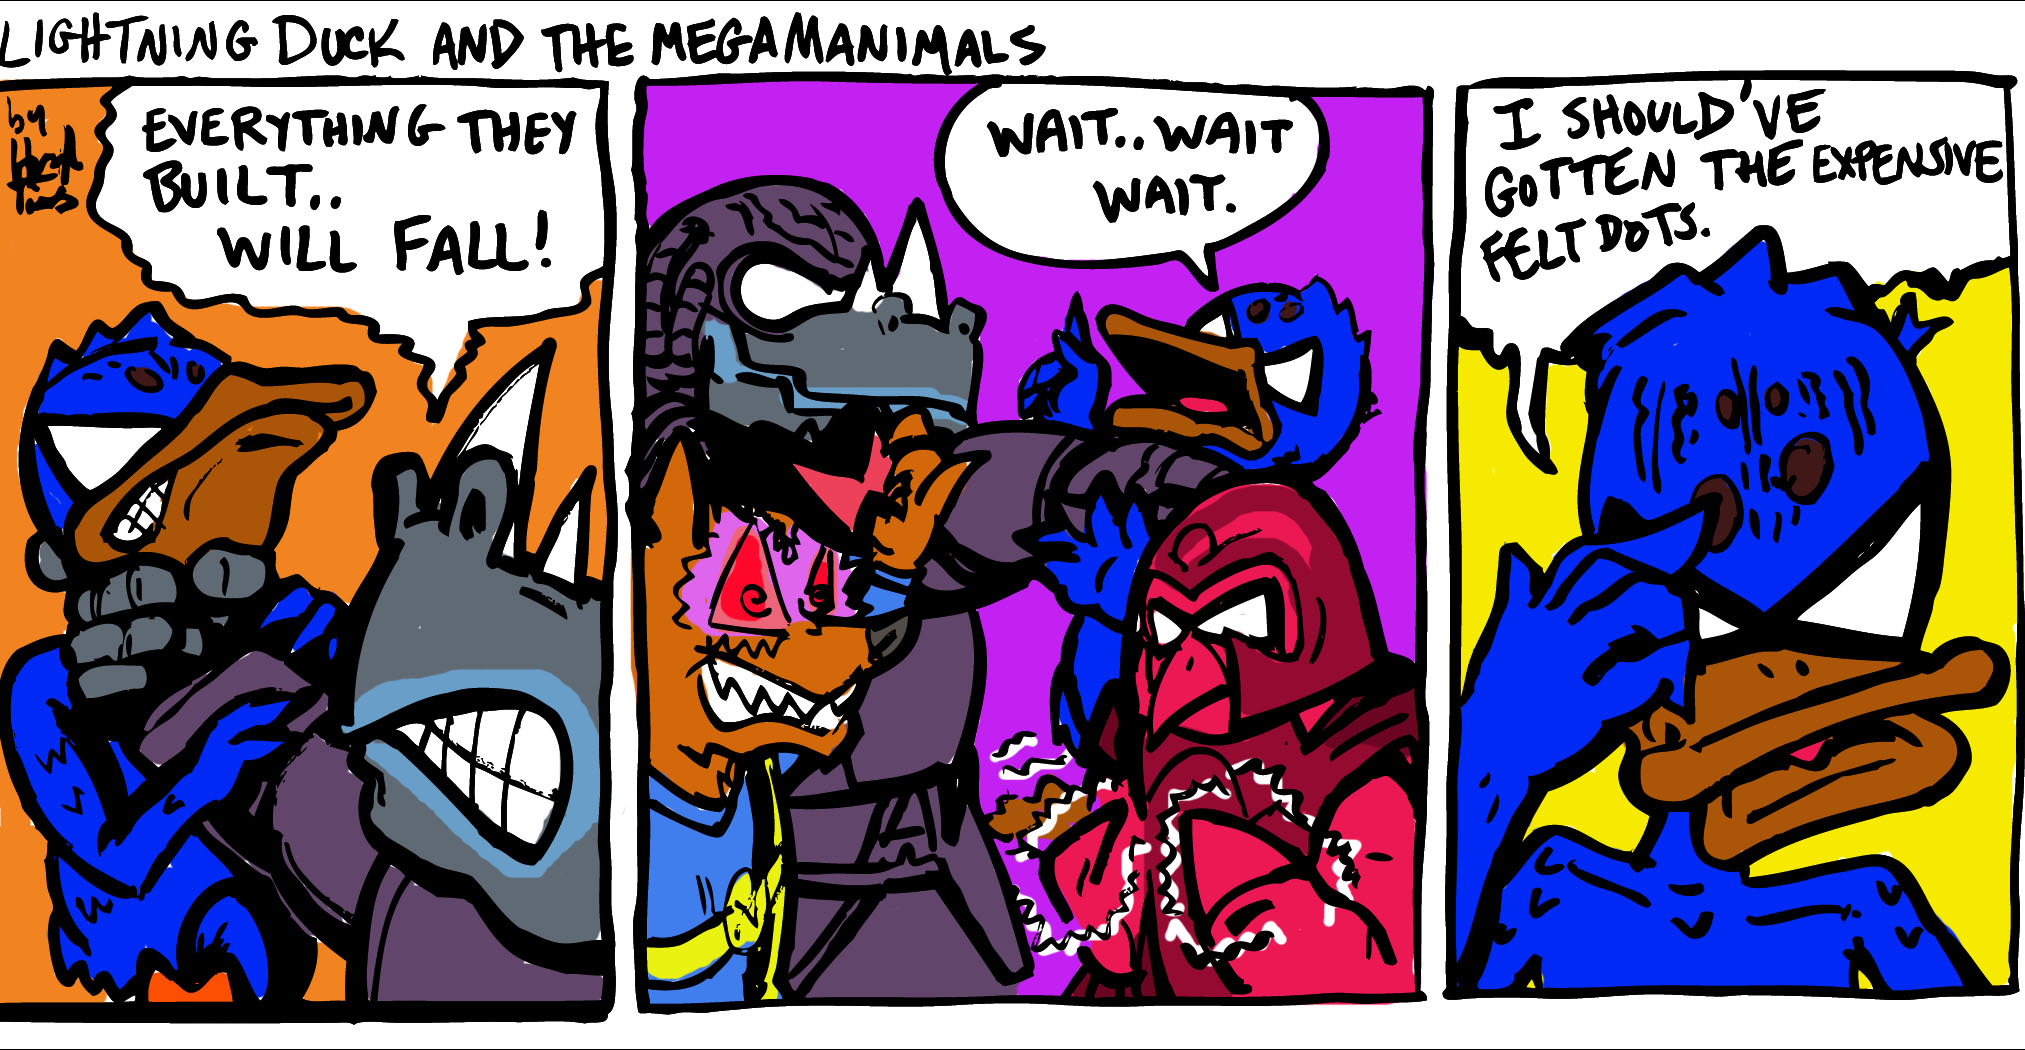 Lightning Duck and the Megamanimals 3